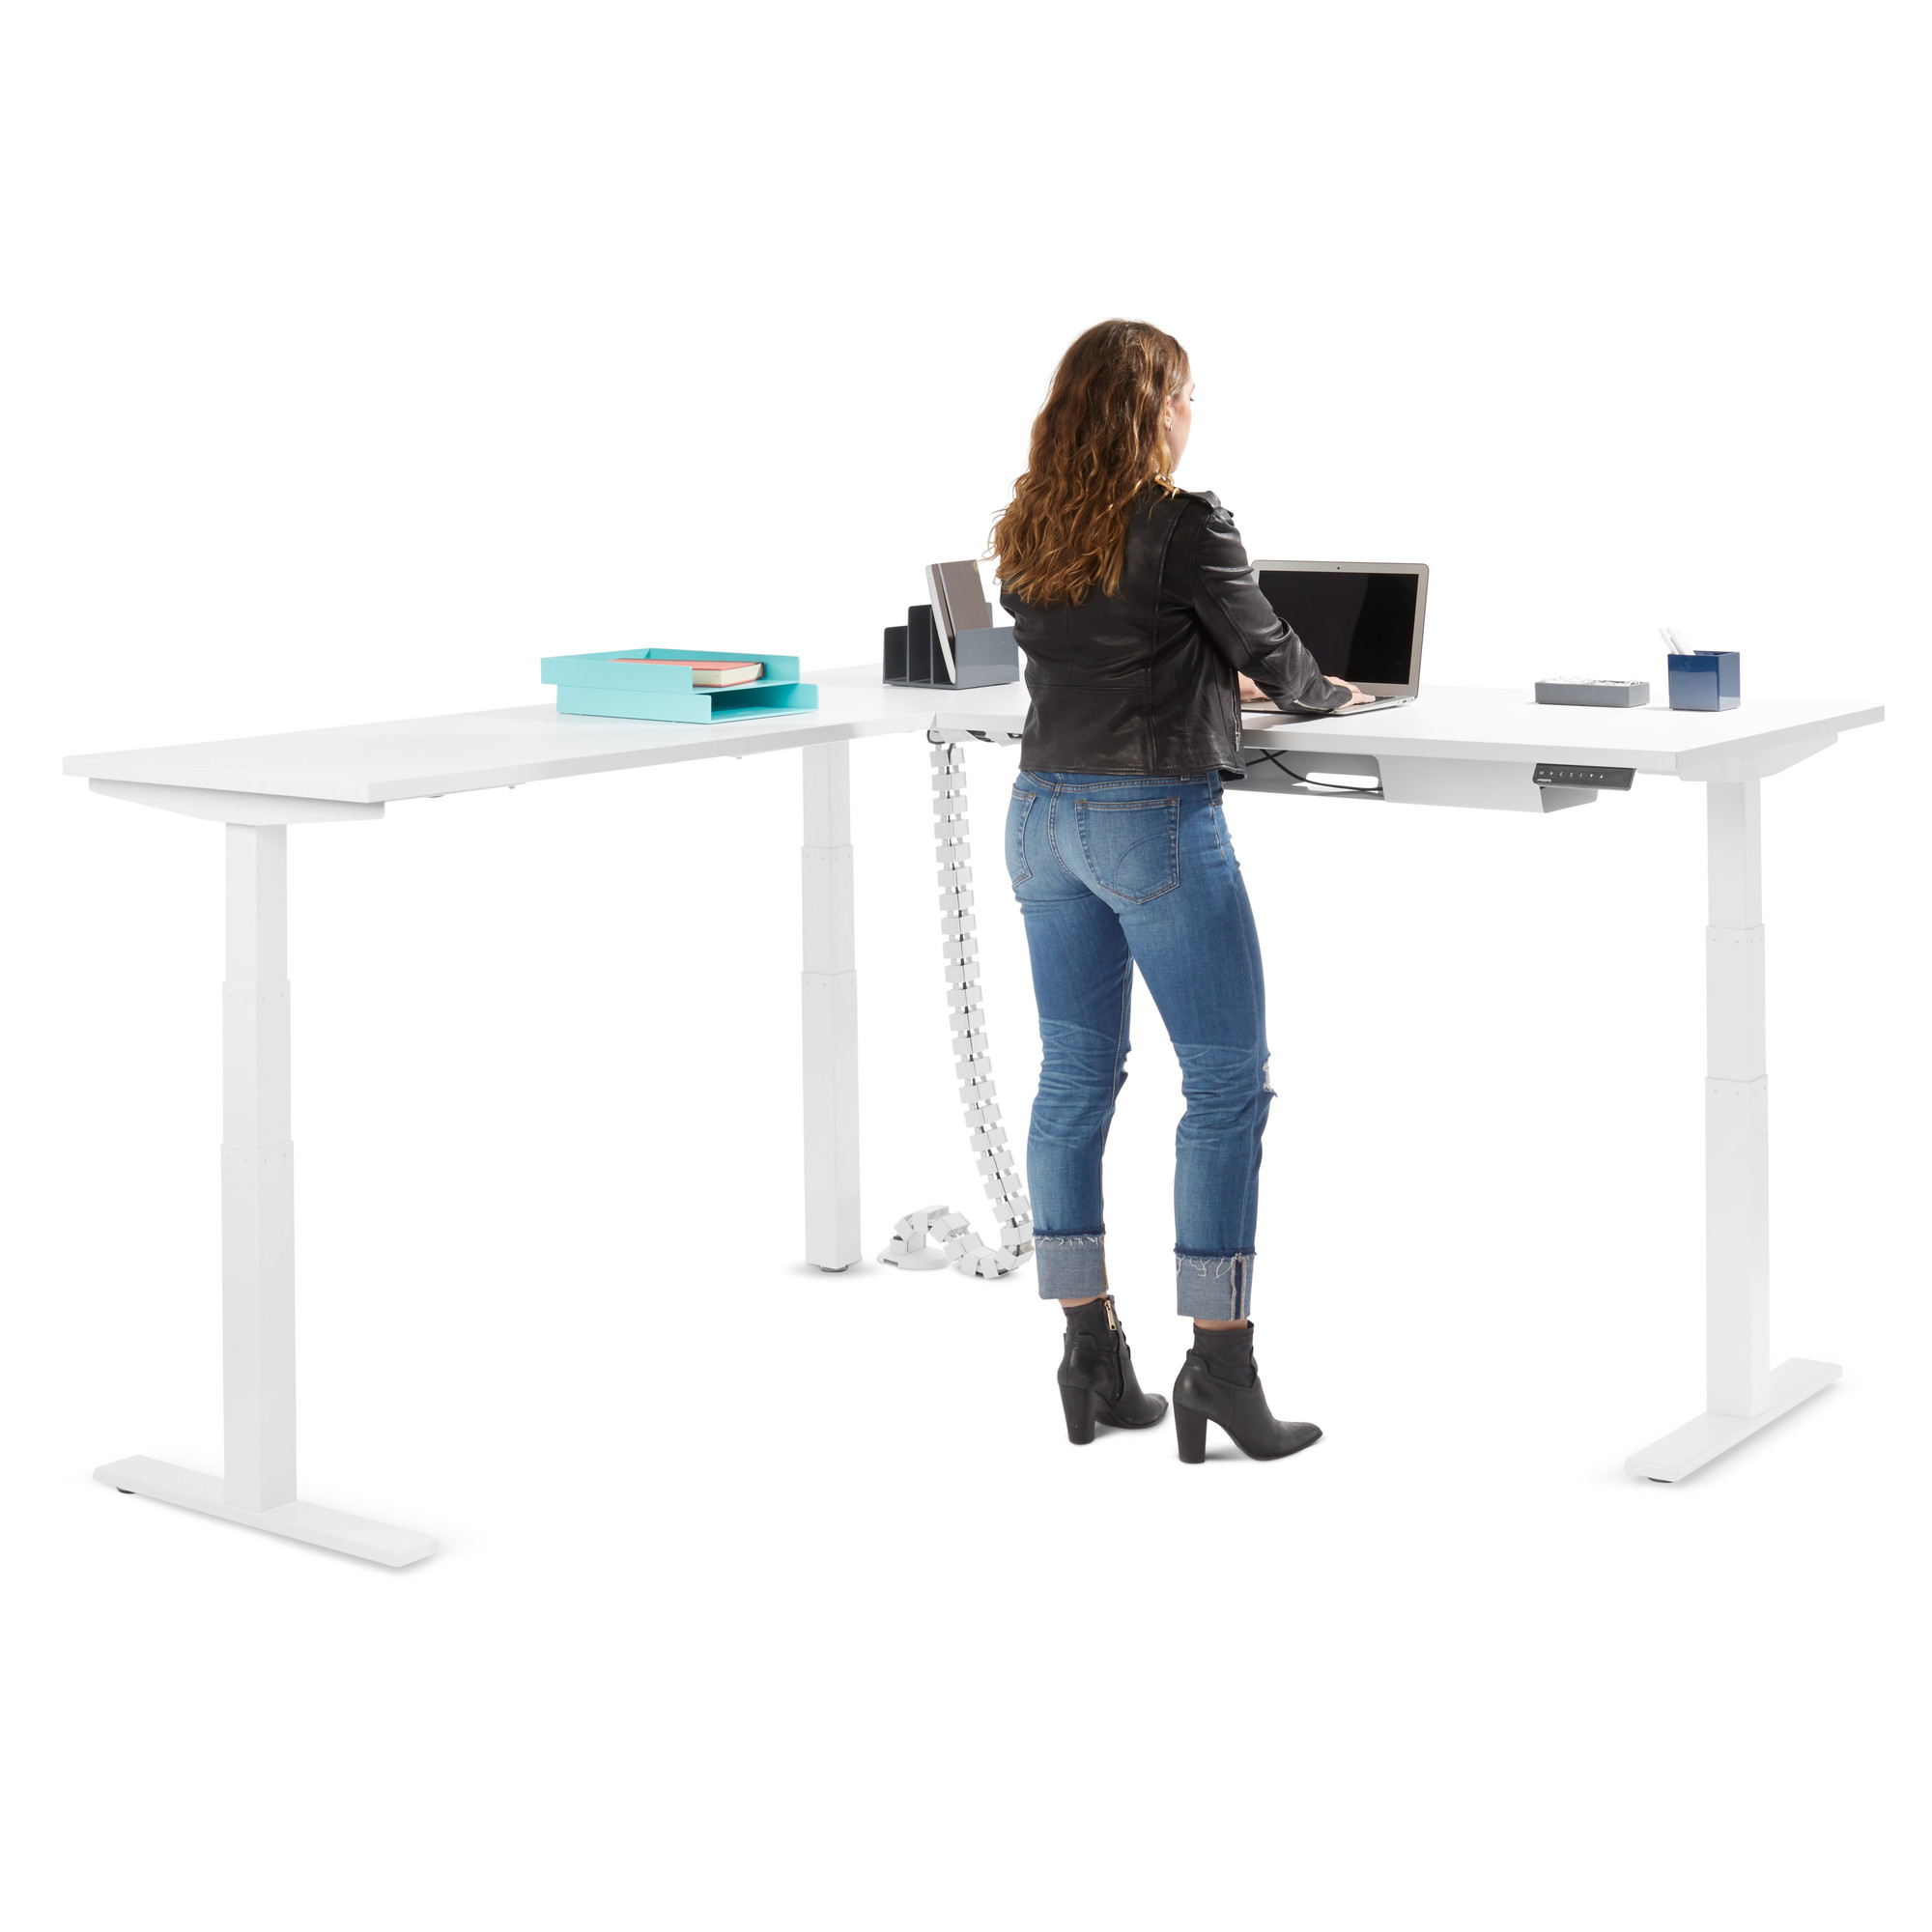 height product posturedesks adjustable tilting bd elite desk legs mobile